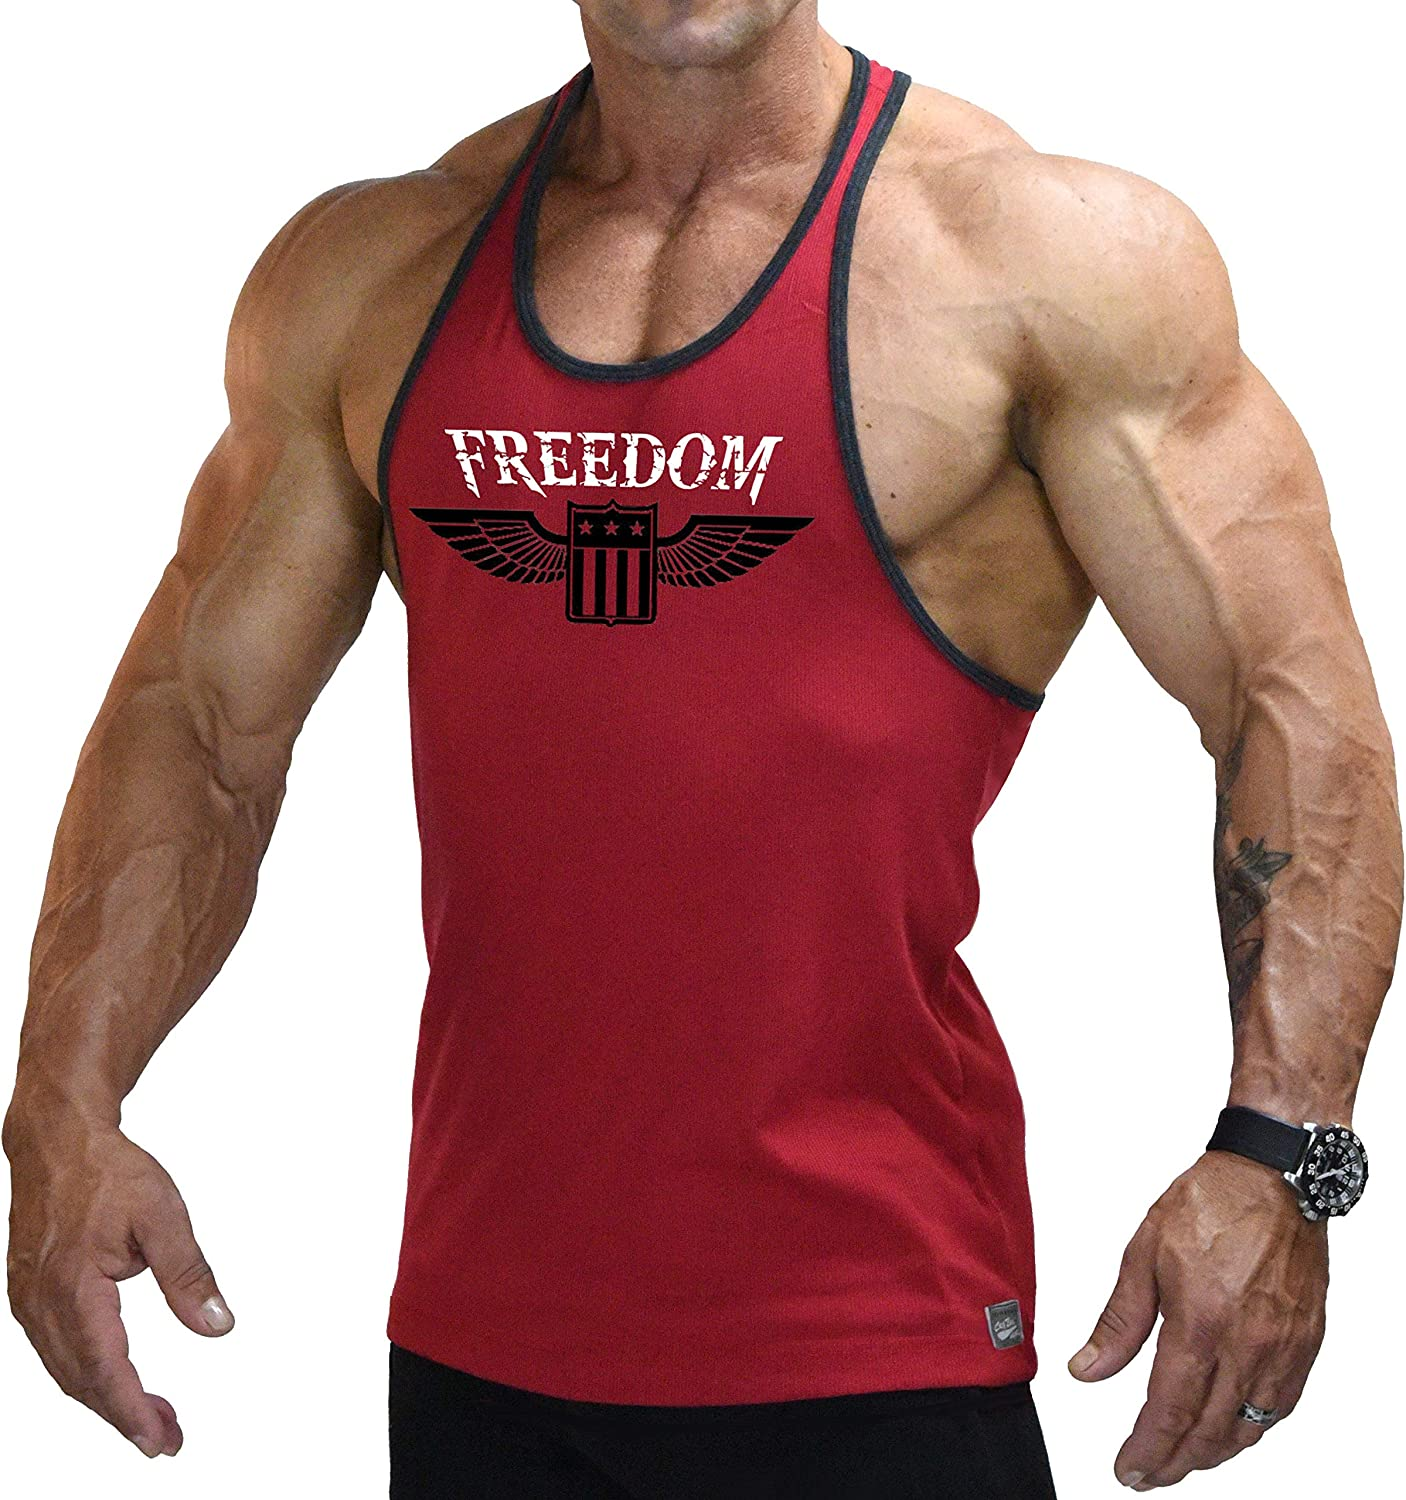 Stringer Fitted Ranking TOP15 Tank Top in Red Great interest and Freedom Desi Black with Trim